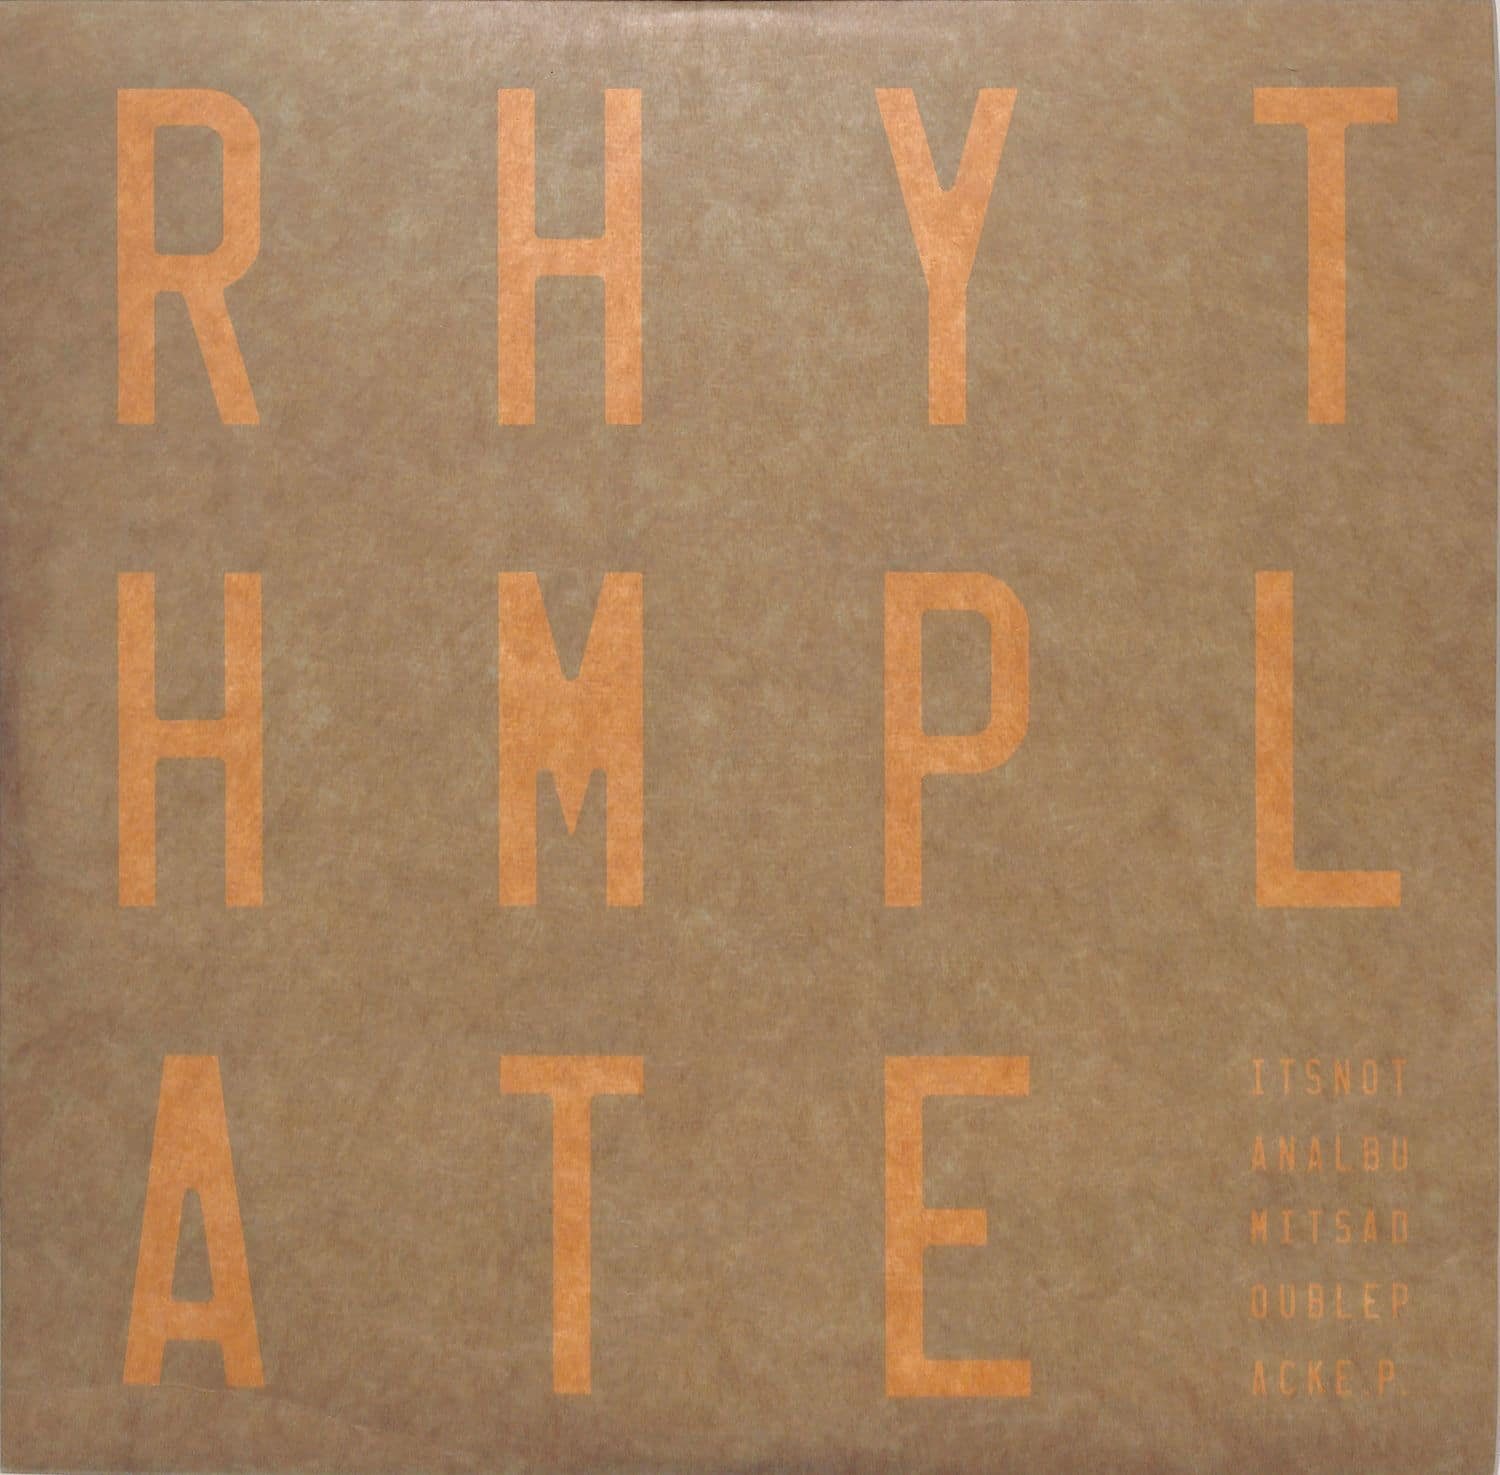 Rhythm Plate - ITS NOT AN ALBUM ITS A DOUBLEPACK EP